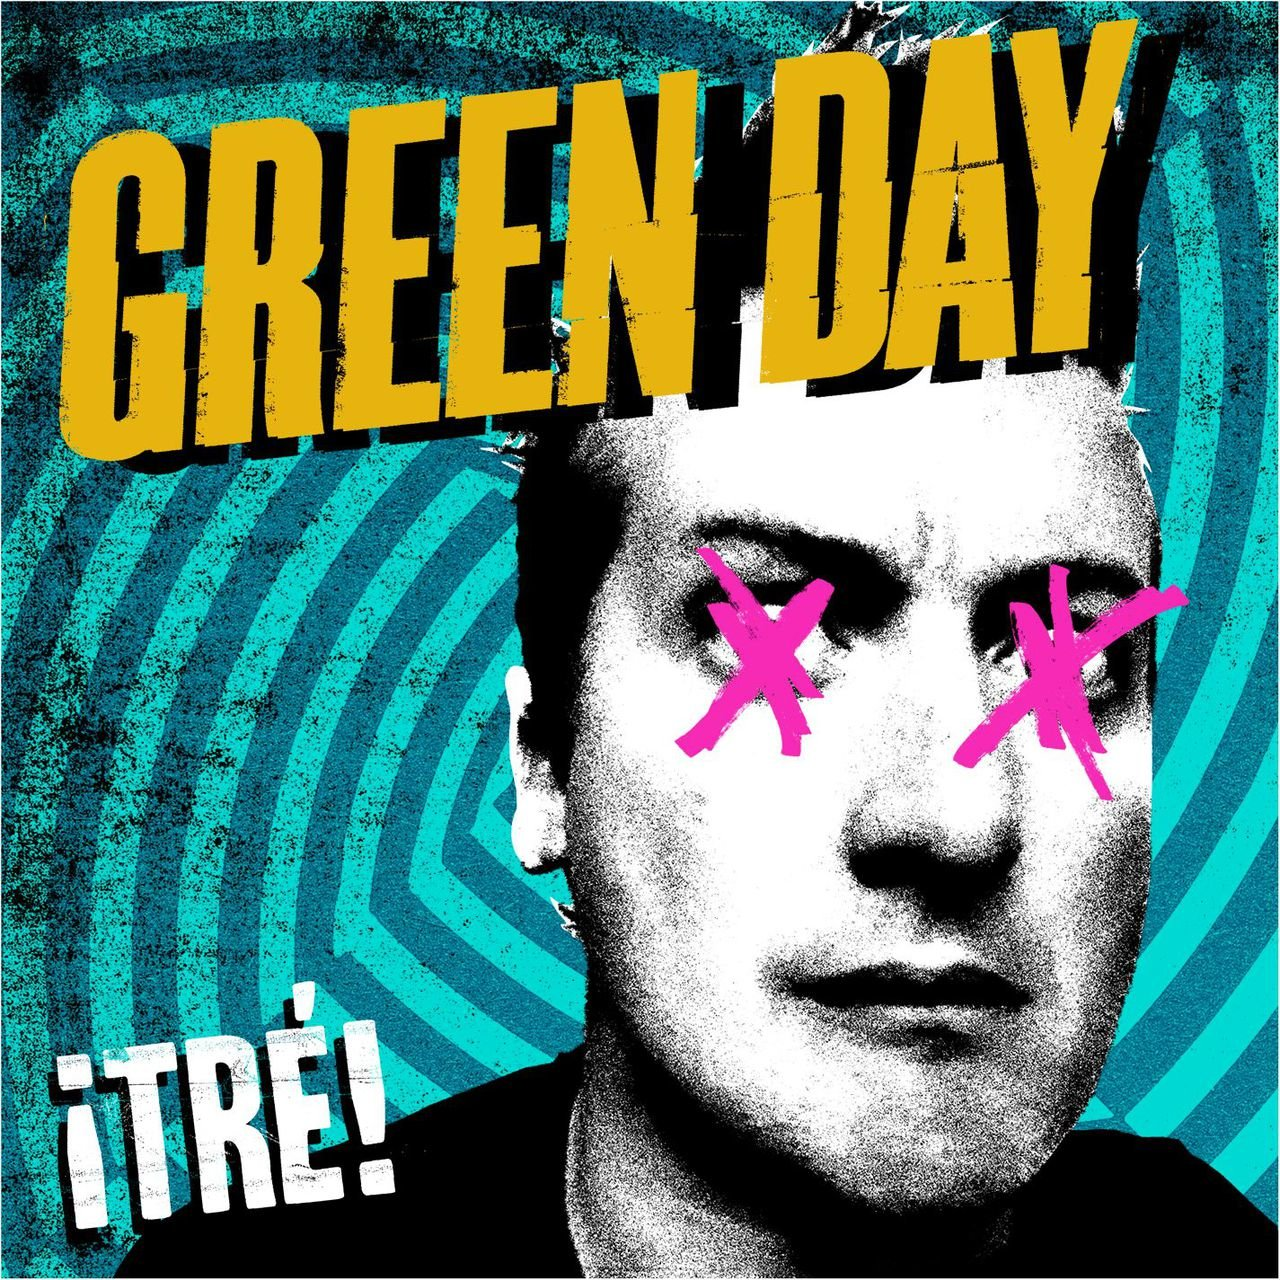 Скачать green day 21 guns mp3